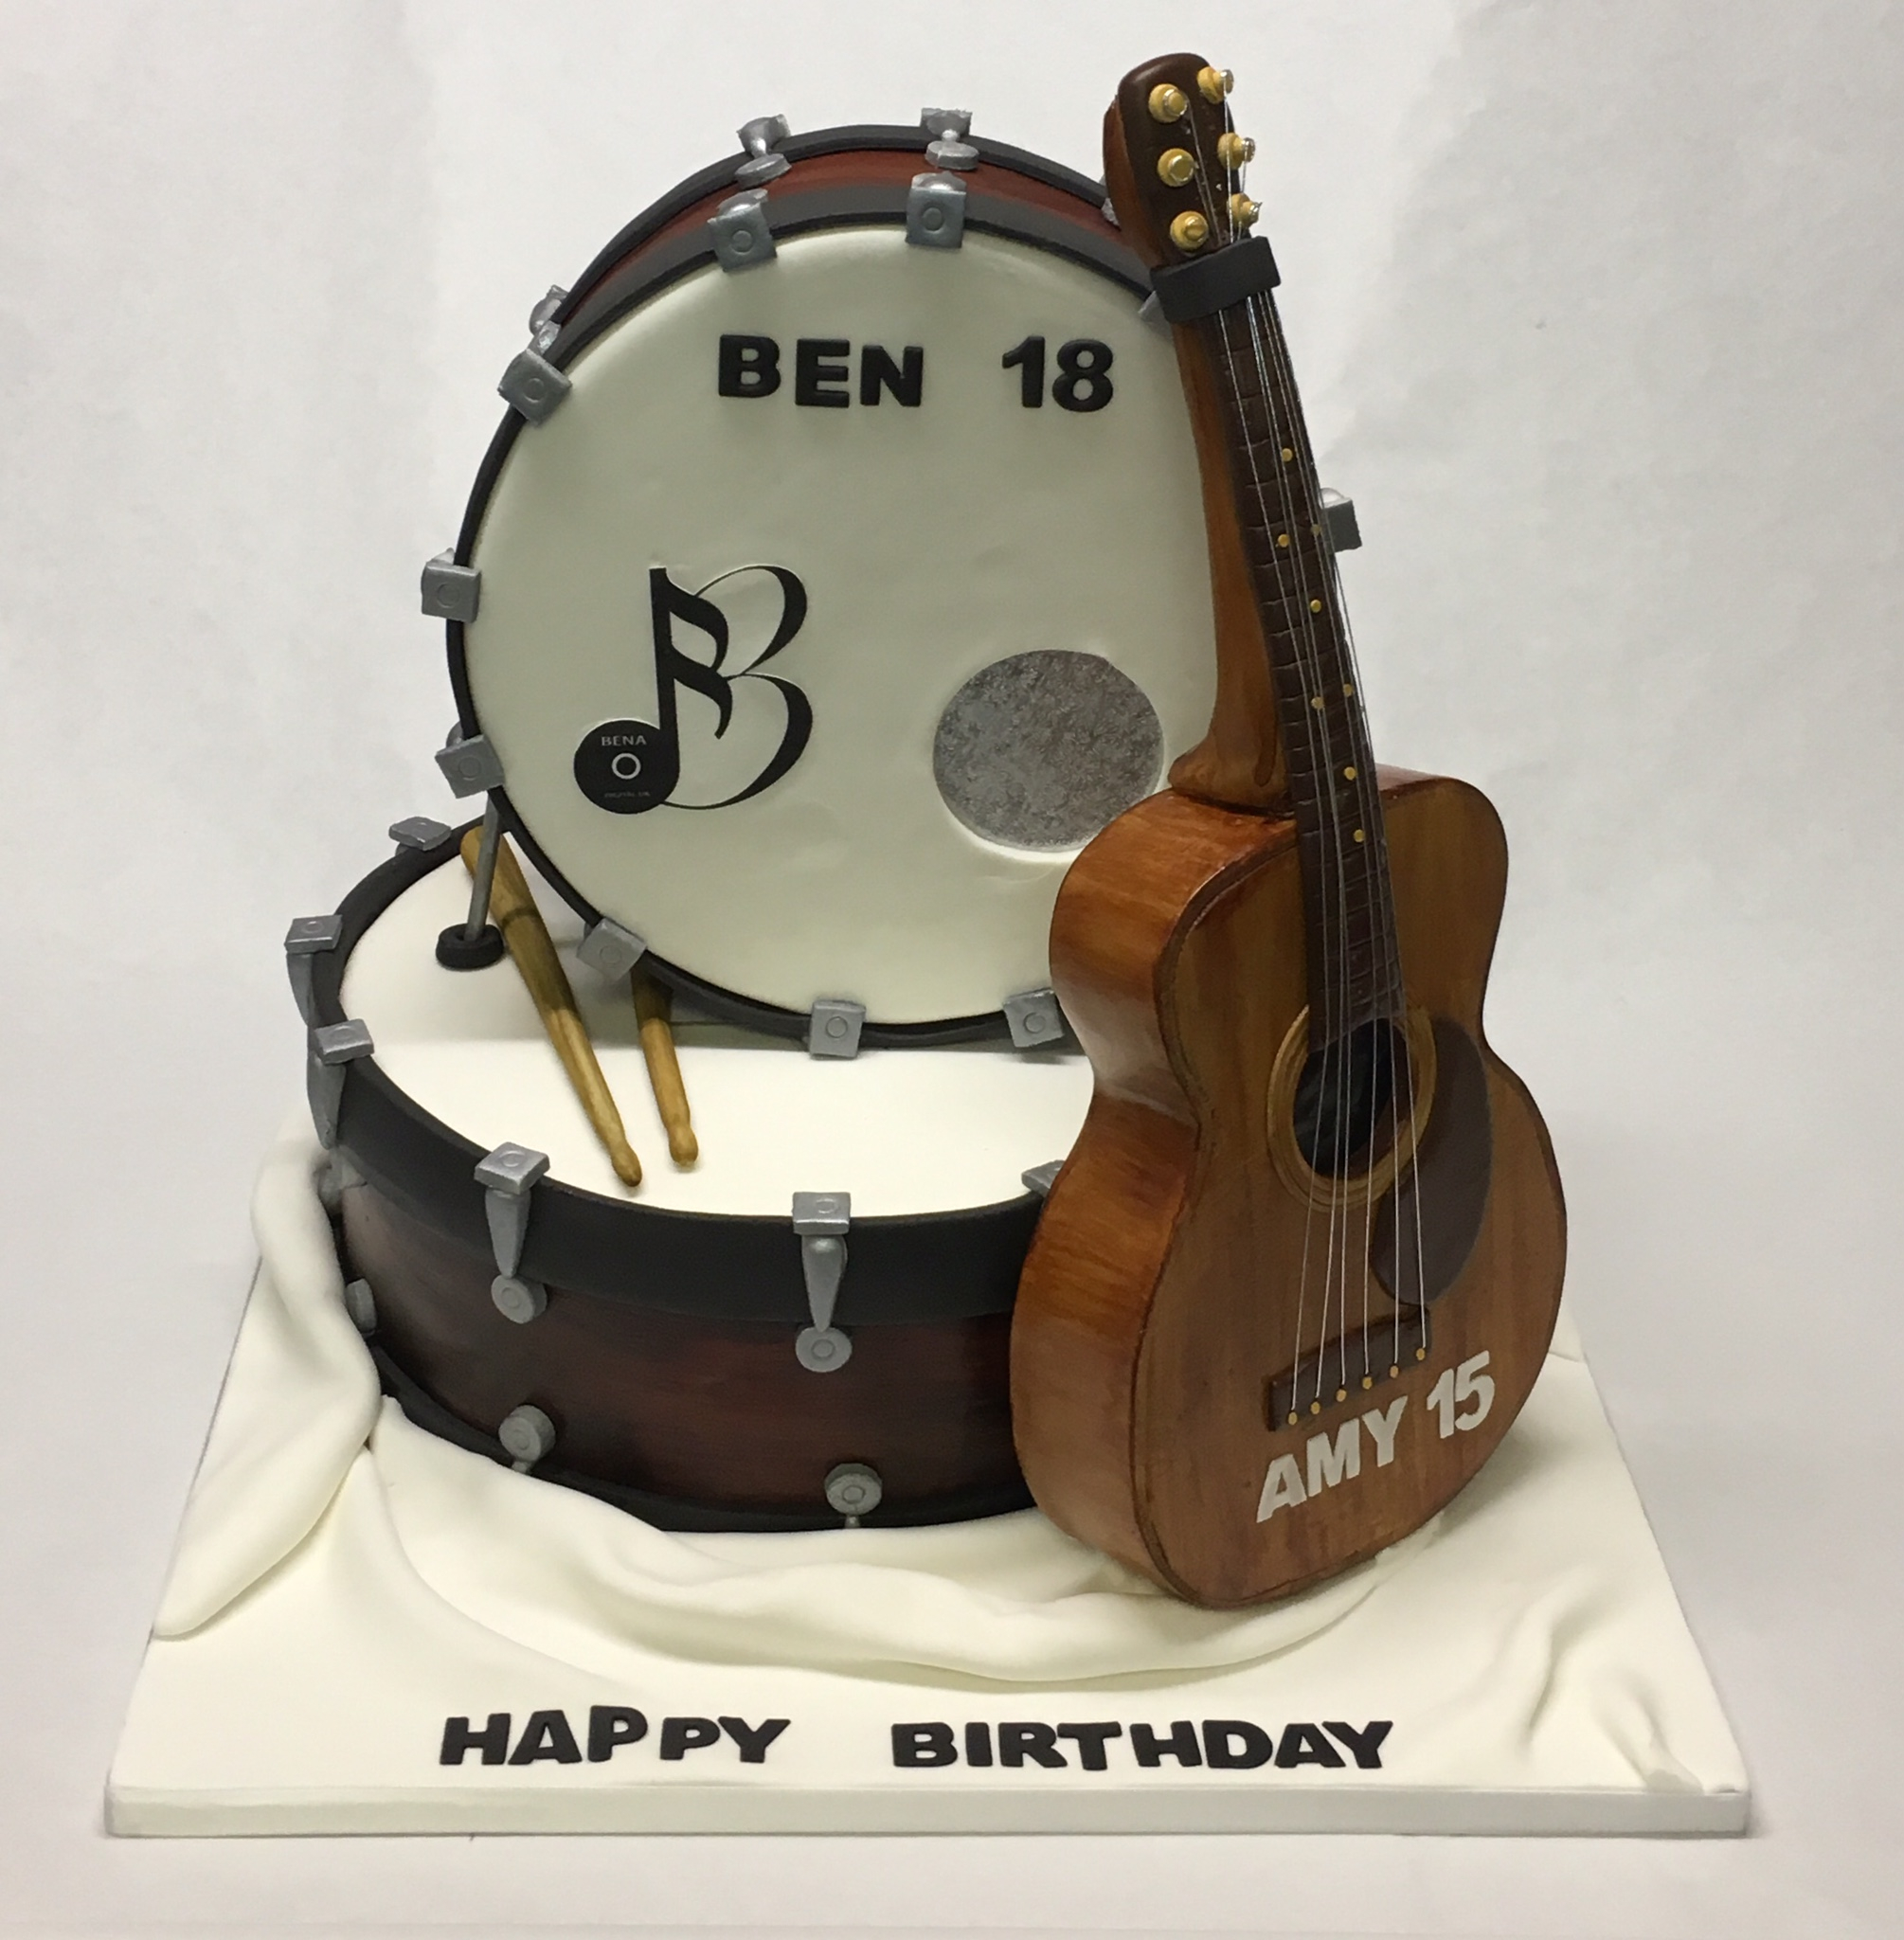 Guitar Birthday Cake Drumkit And Guitar Cake Boys Birthday Cakes Celebration Cakes